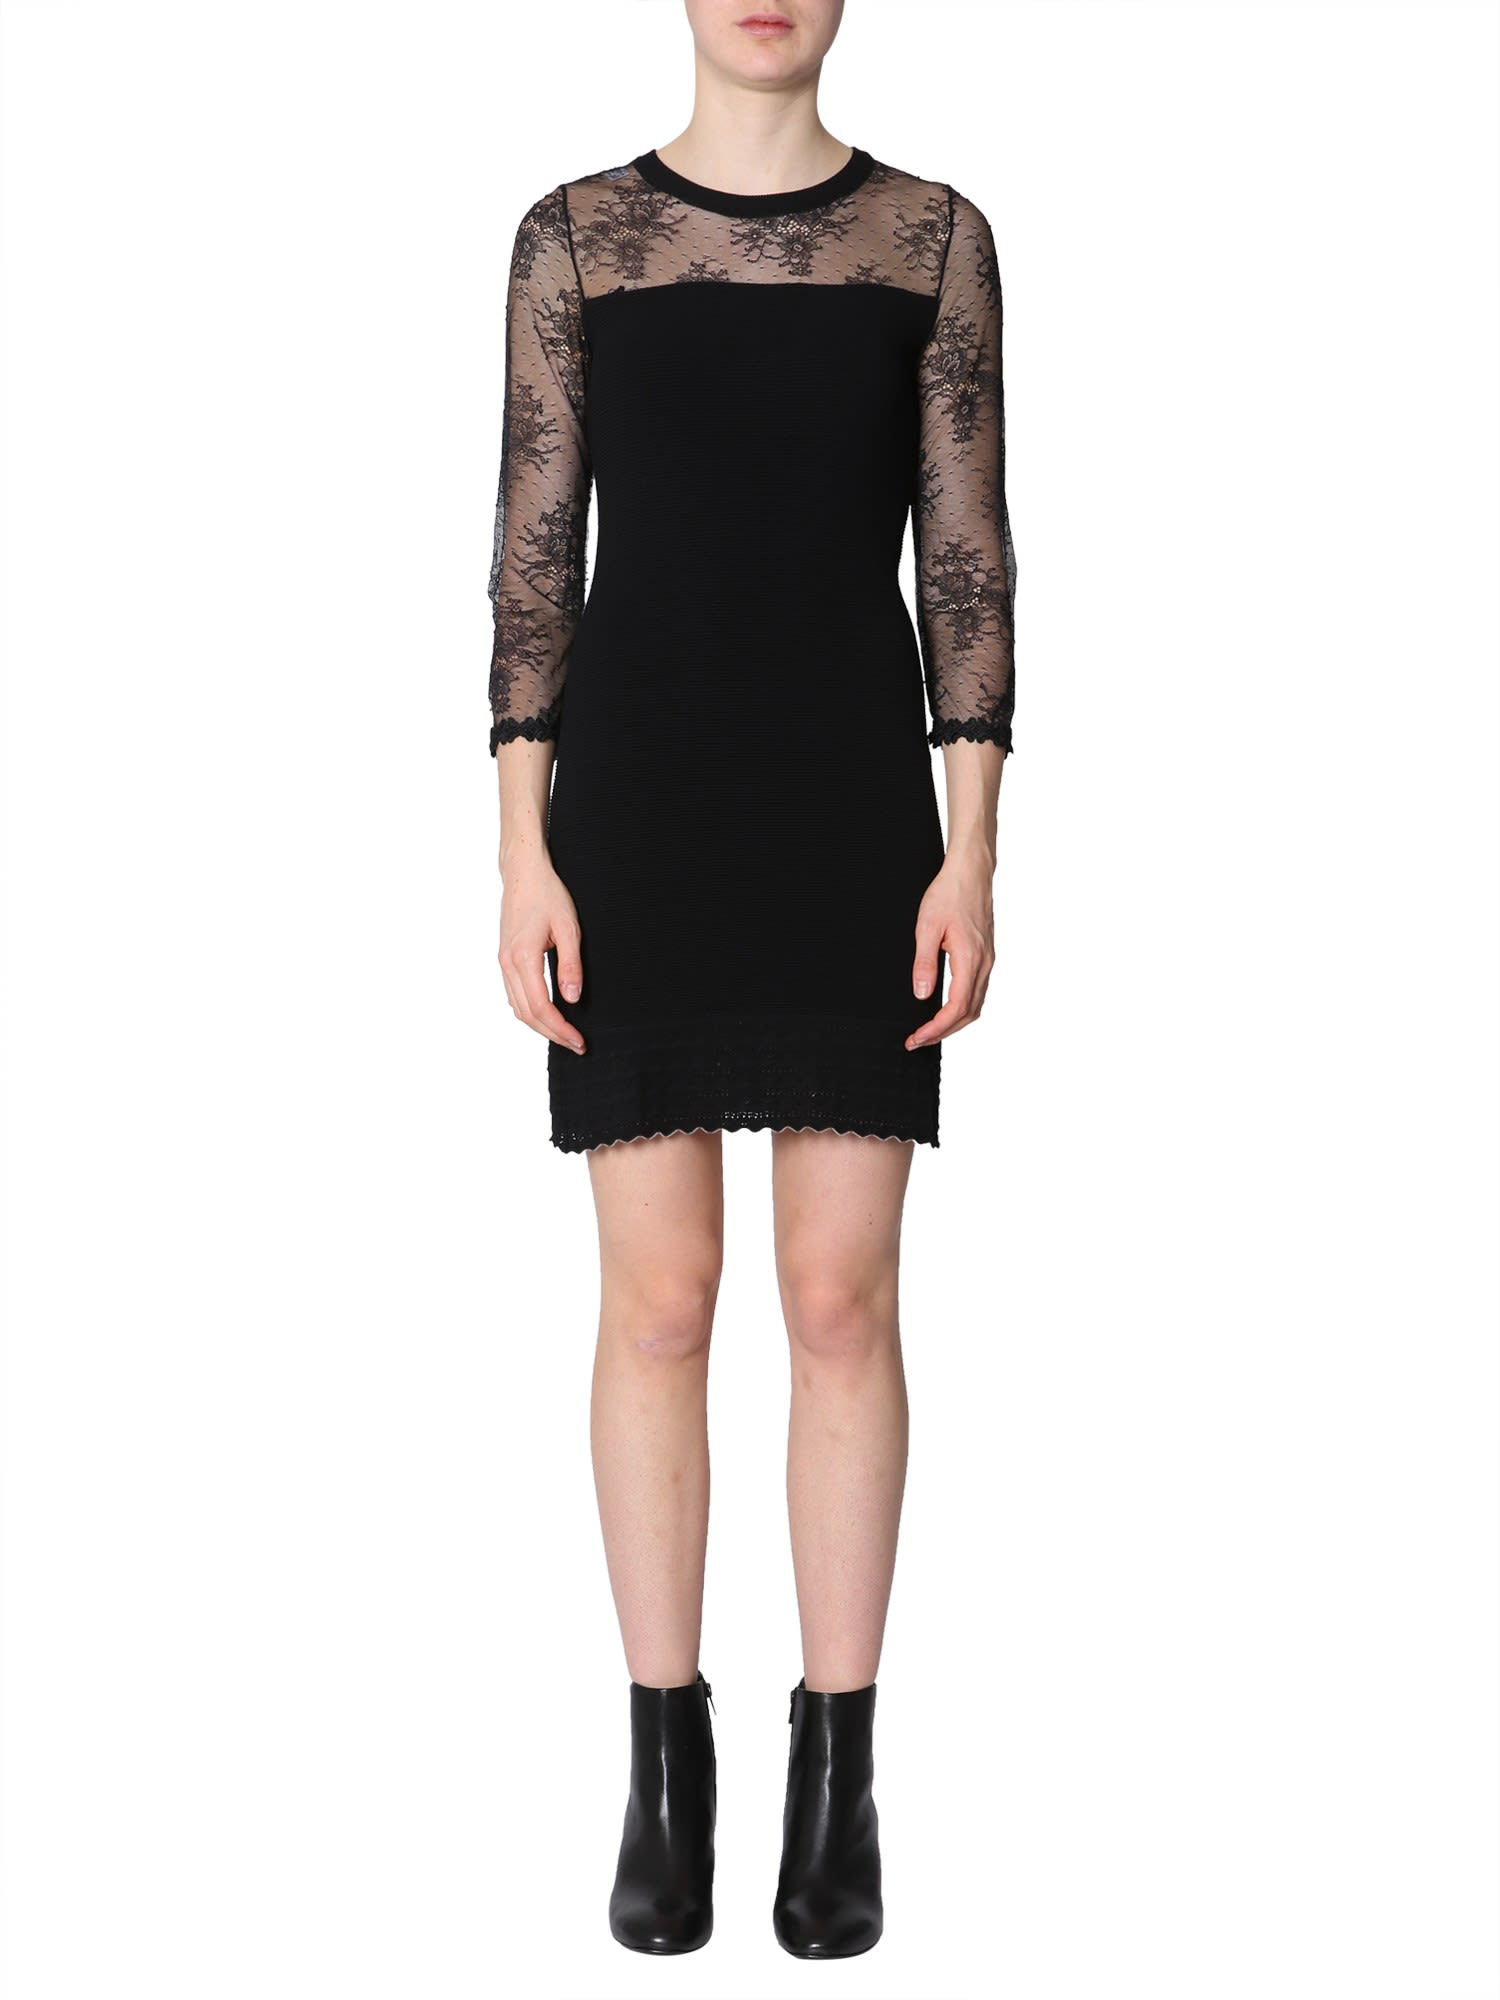 Boutique Moschino Dress With Lace Insert